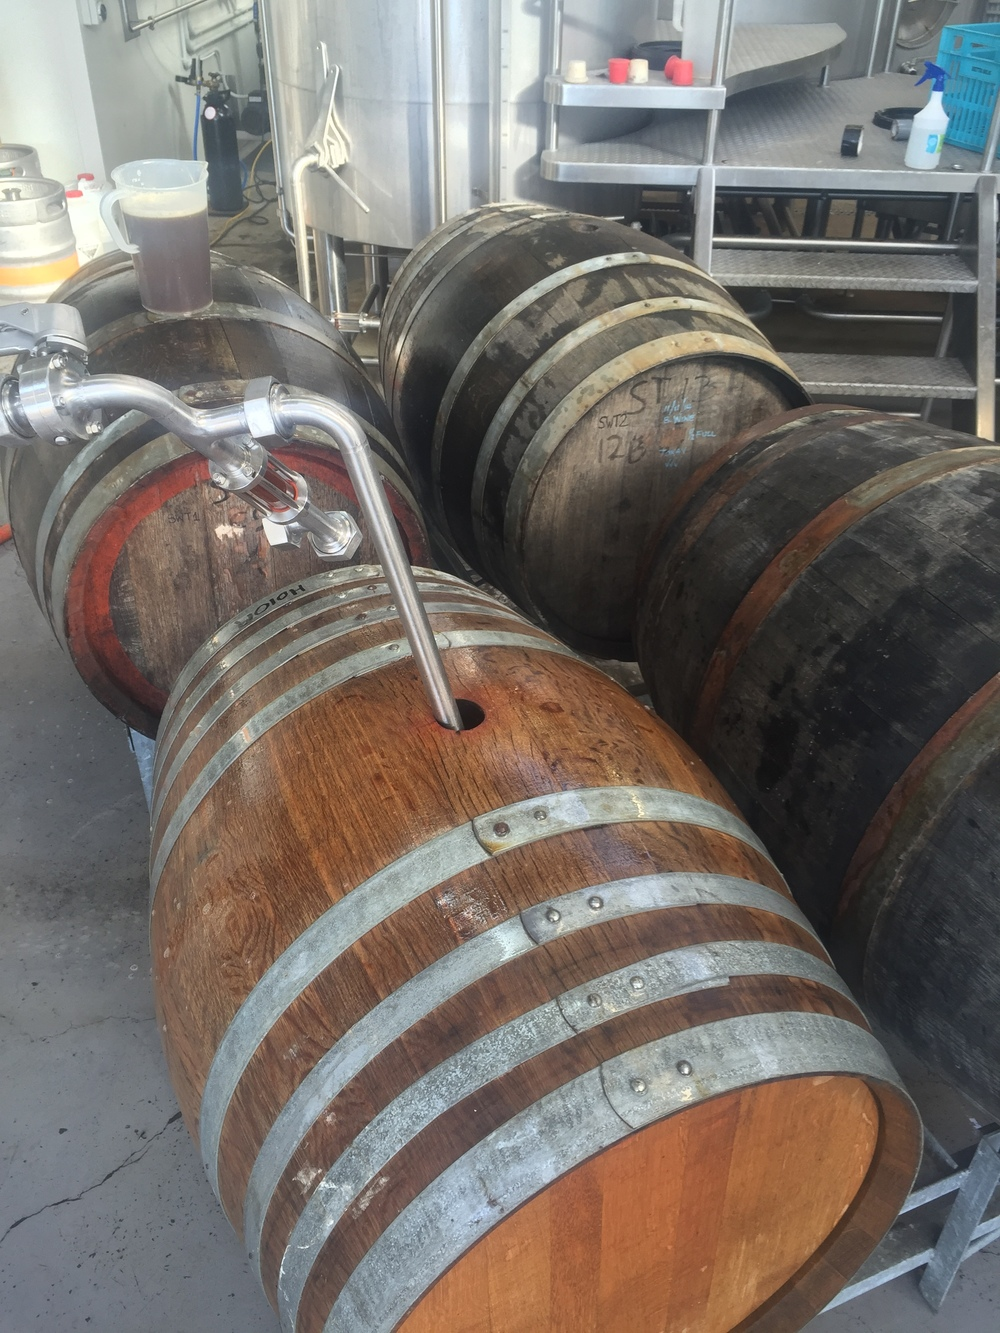 Into barrels for secondary ferment & aging